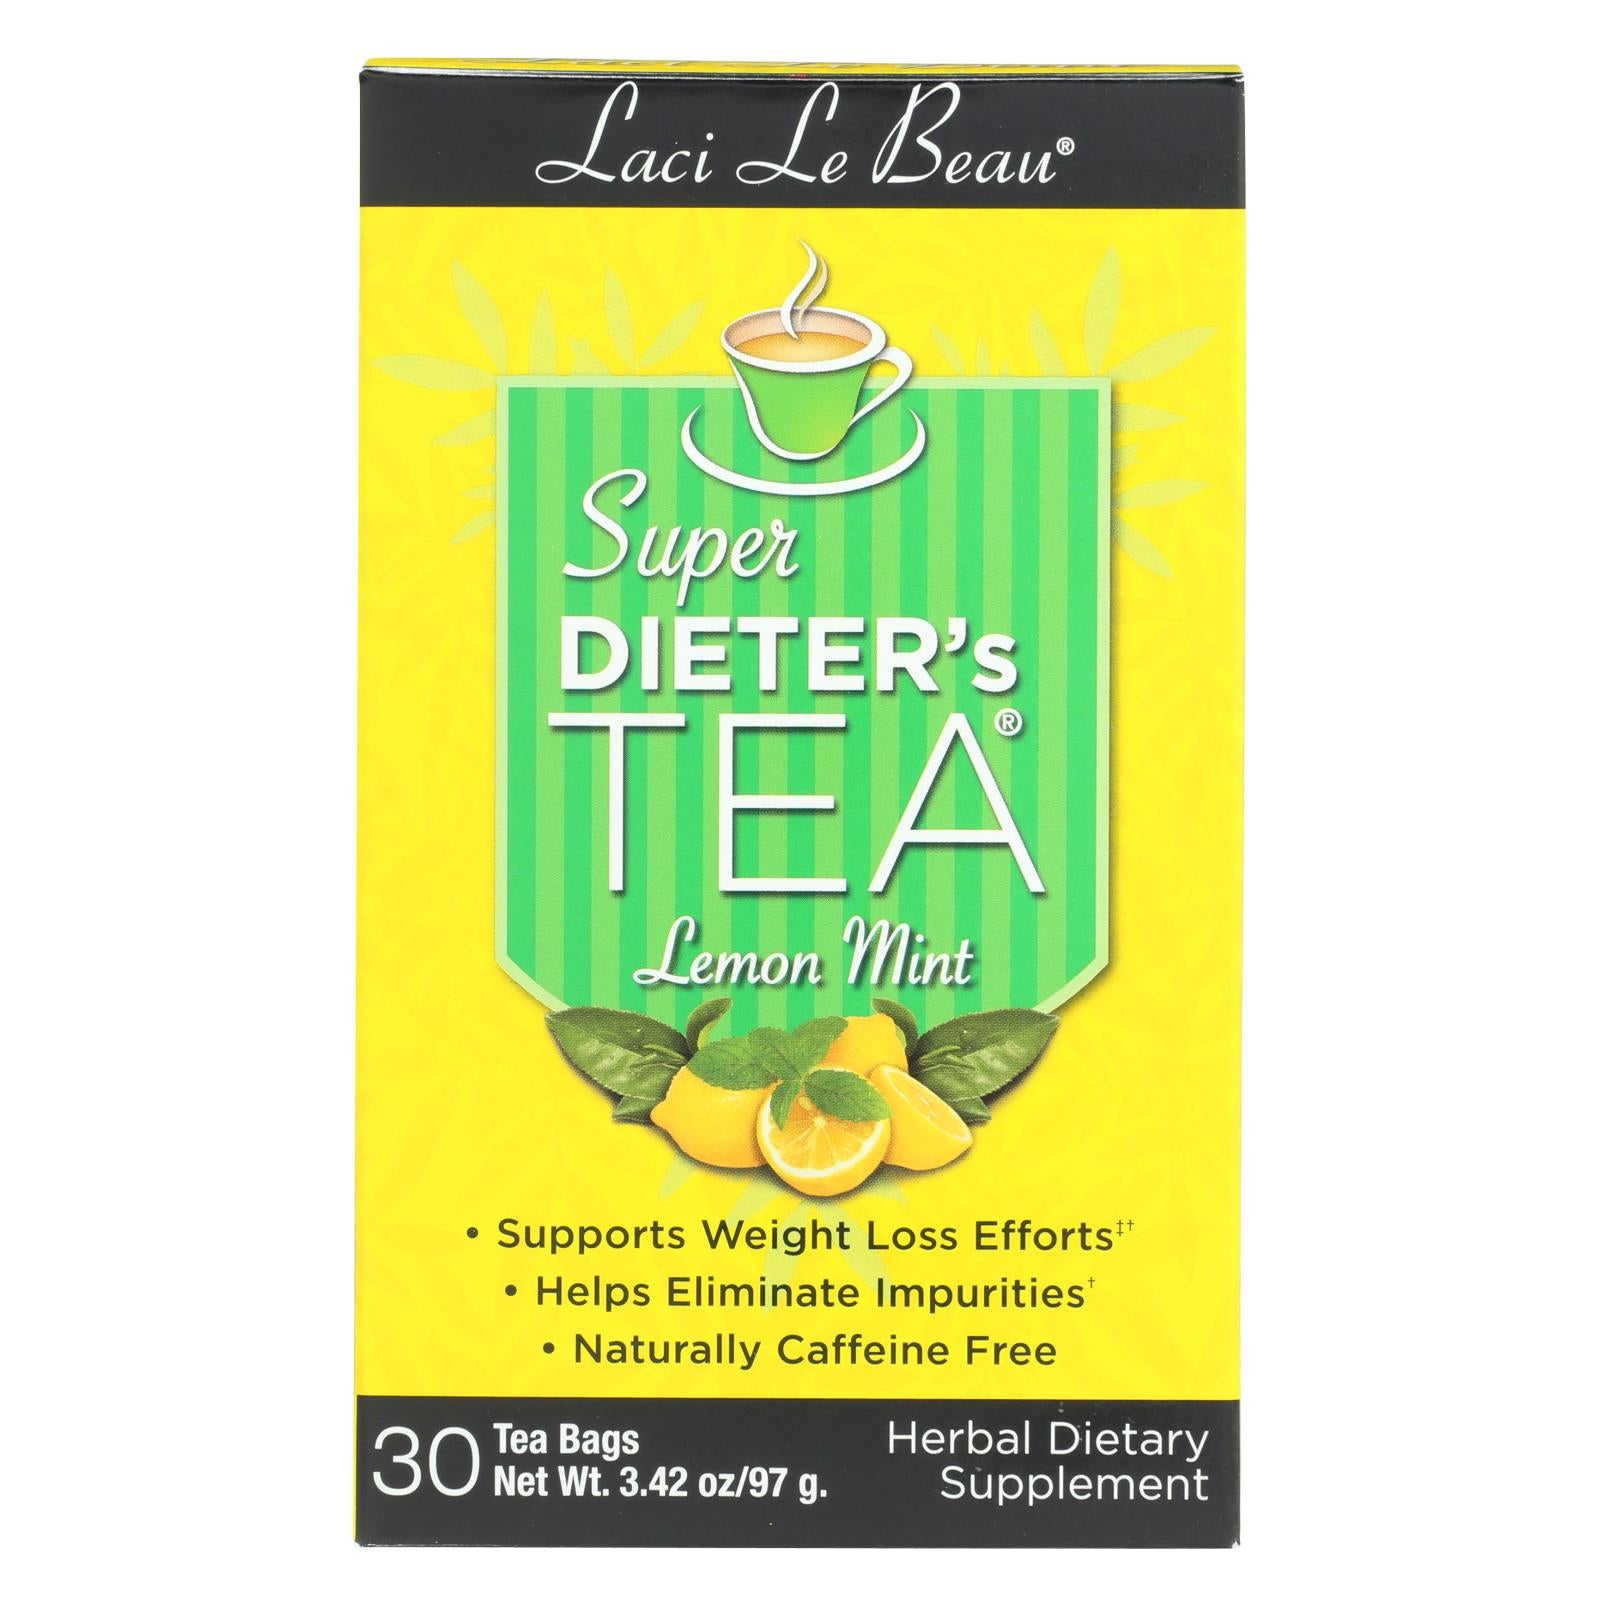 Buy Laci Le Beau Super Dieter's Tea Lemon Mint - 30 Tea Bags - Wellness Tea from Veroeco.com